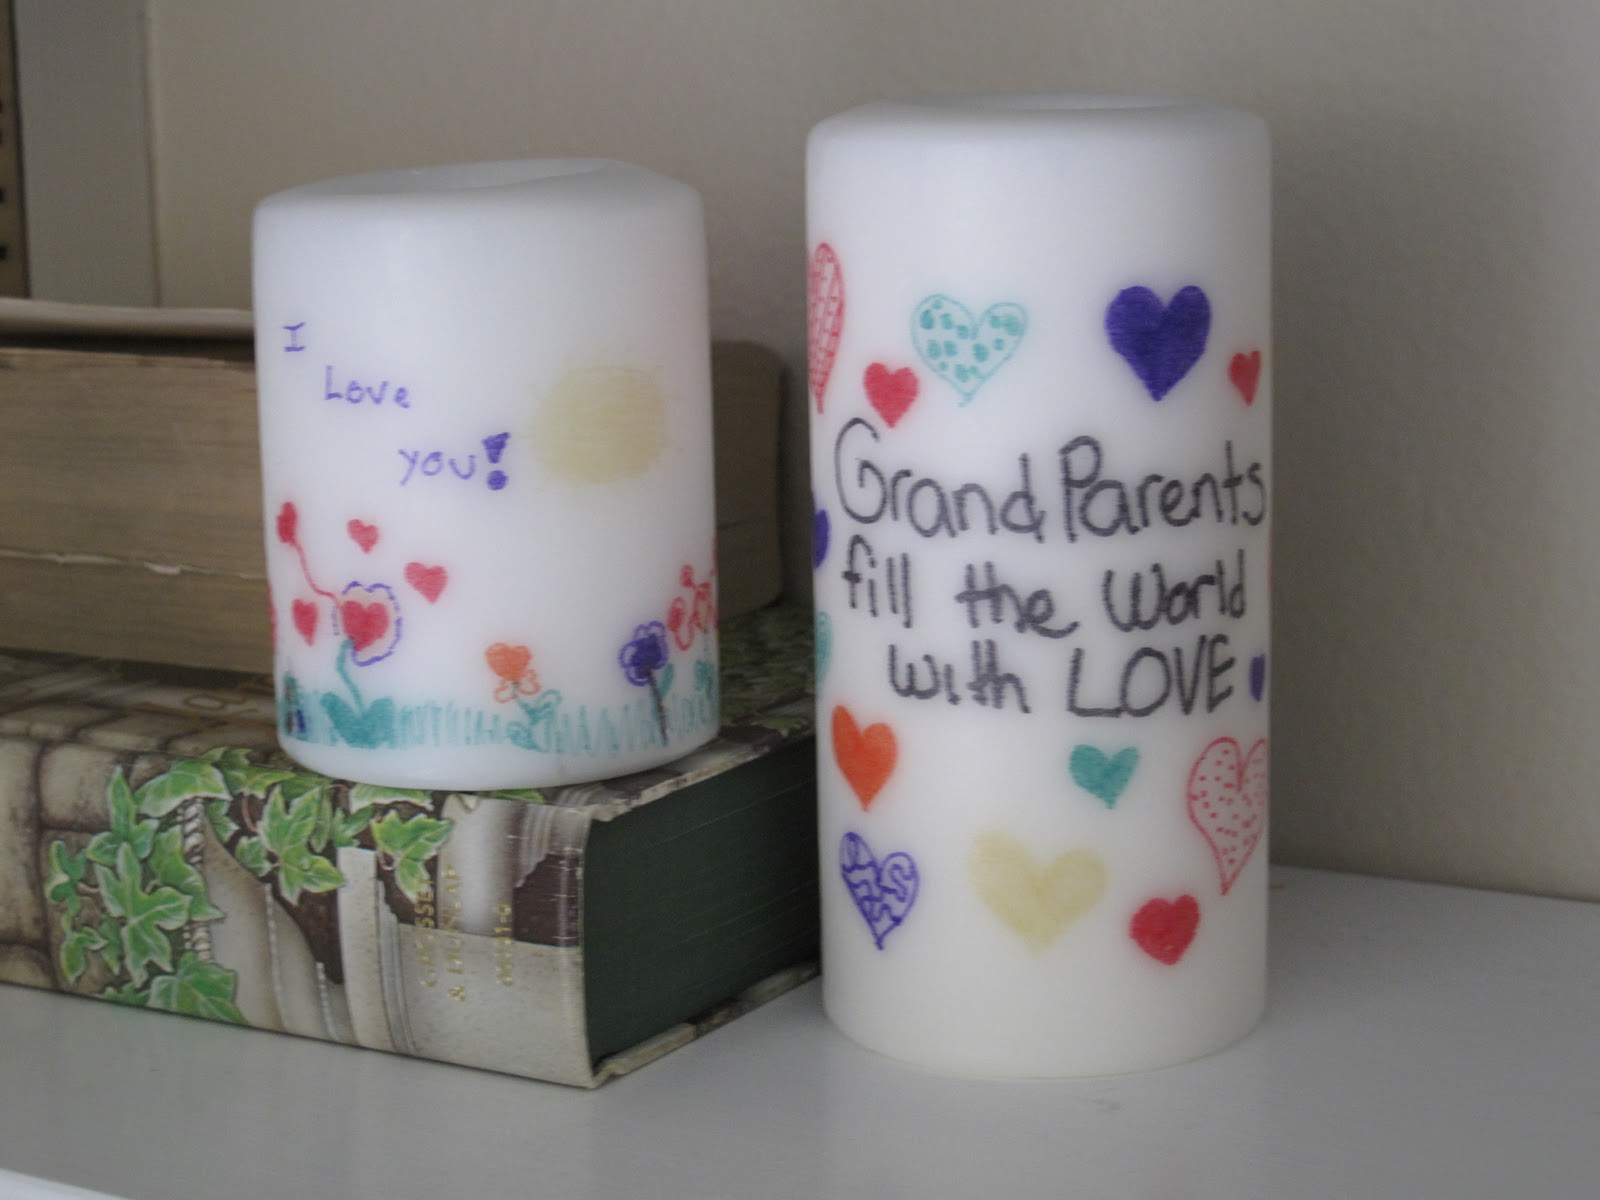 Customized candles endless possibilities diy crafts for Diy candle crafts